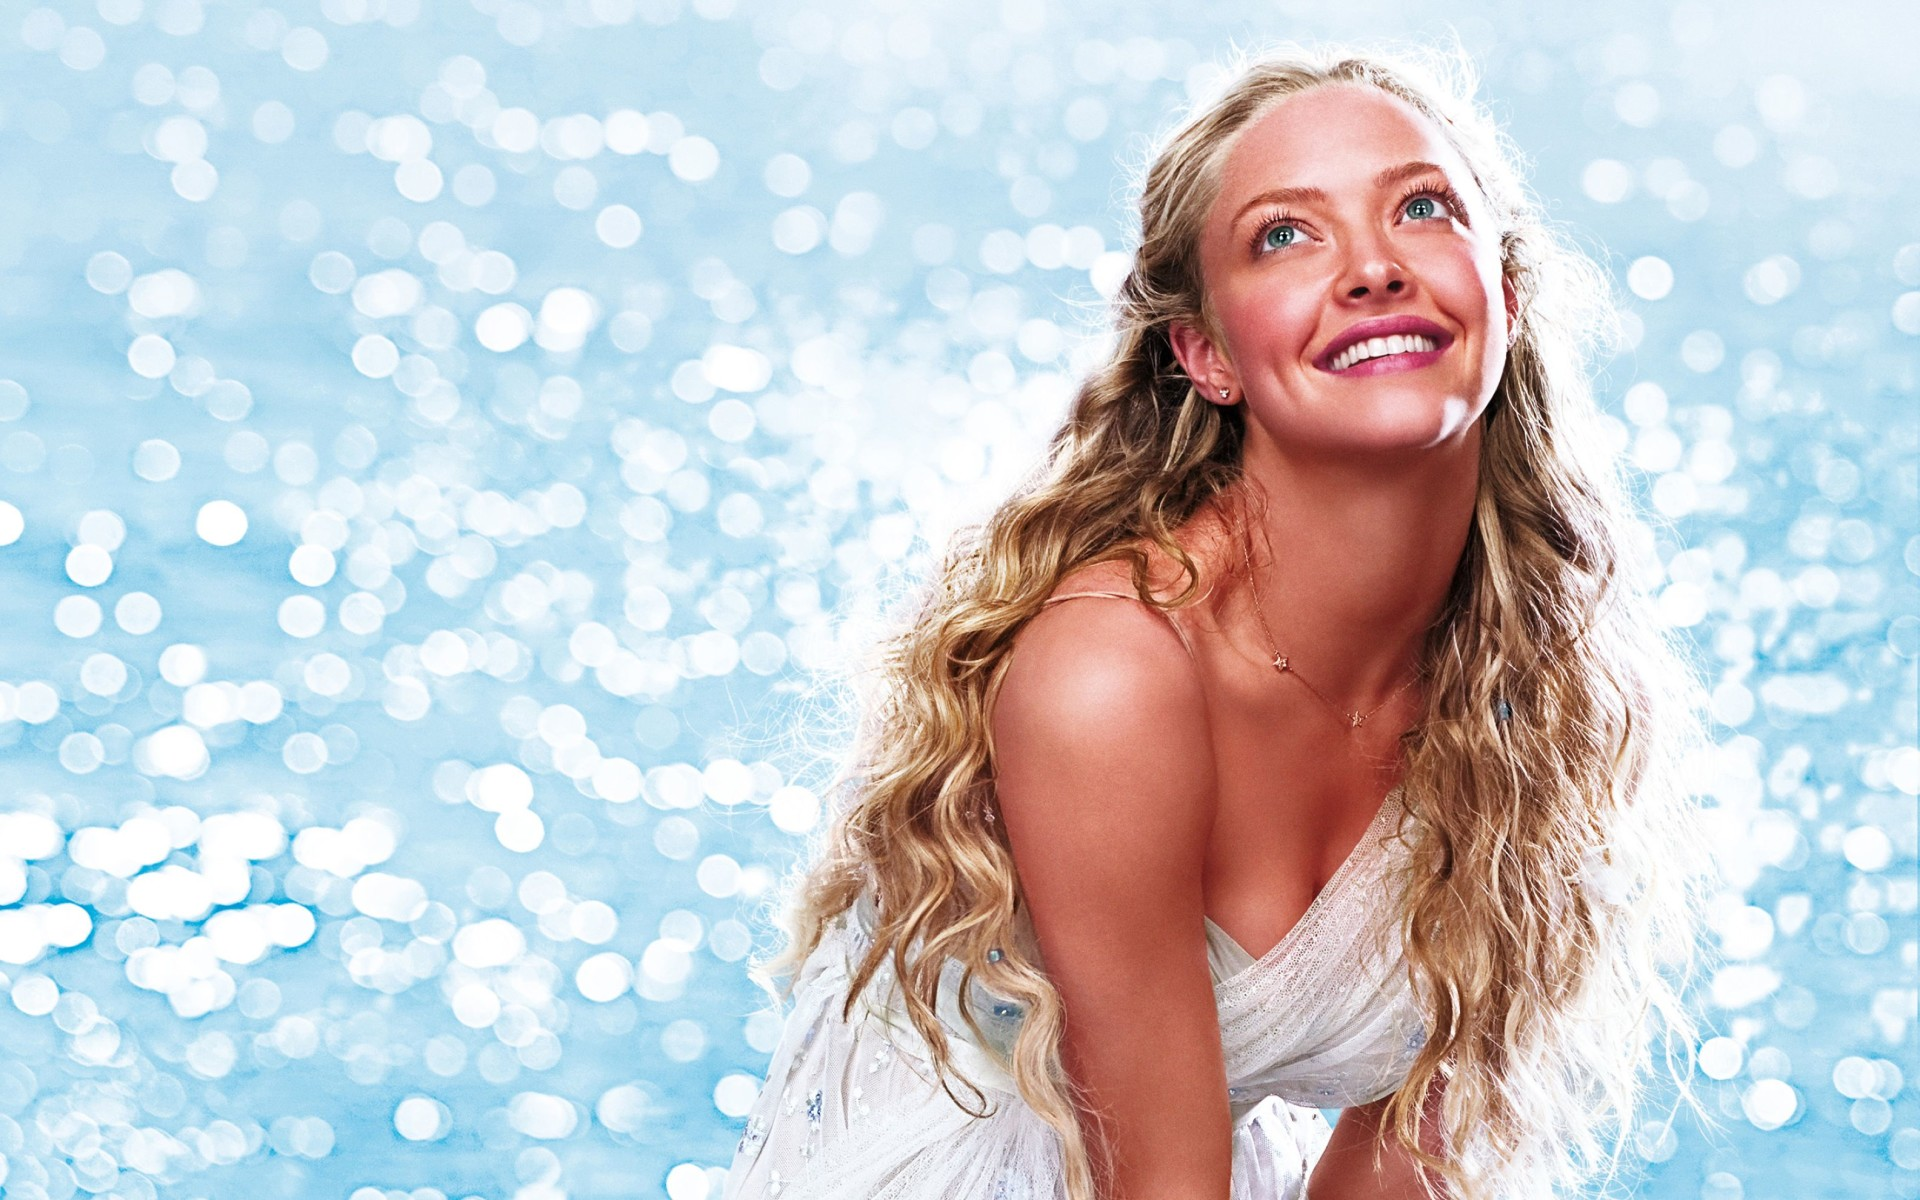 Amanda Seyfried Mamma Mia 2 Wide Wallpaper